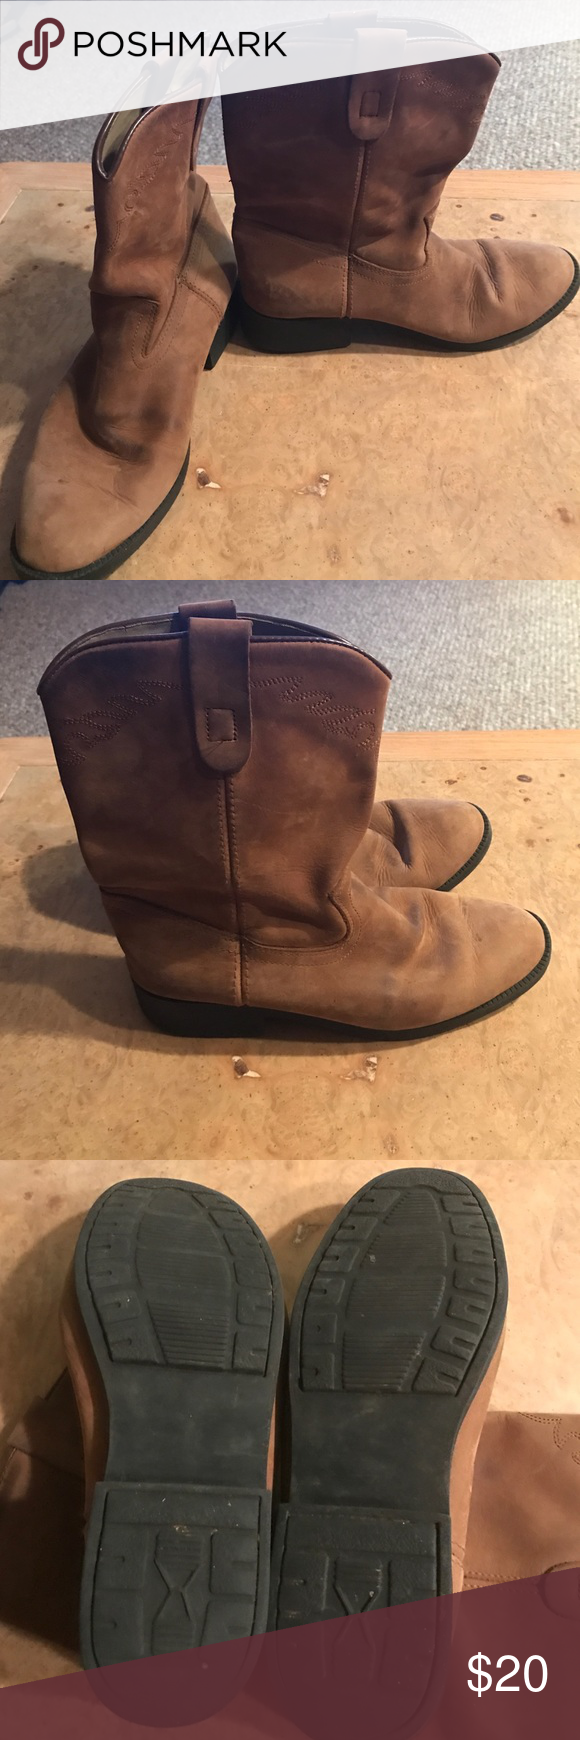 Dan Post boots Dan Post boots GUC size 5.5 Dan Post Shoes Ankle Boots & Booties